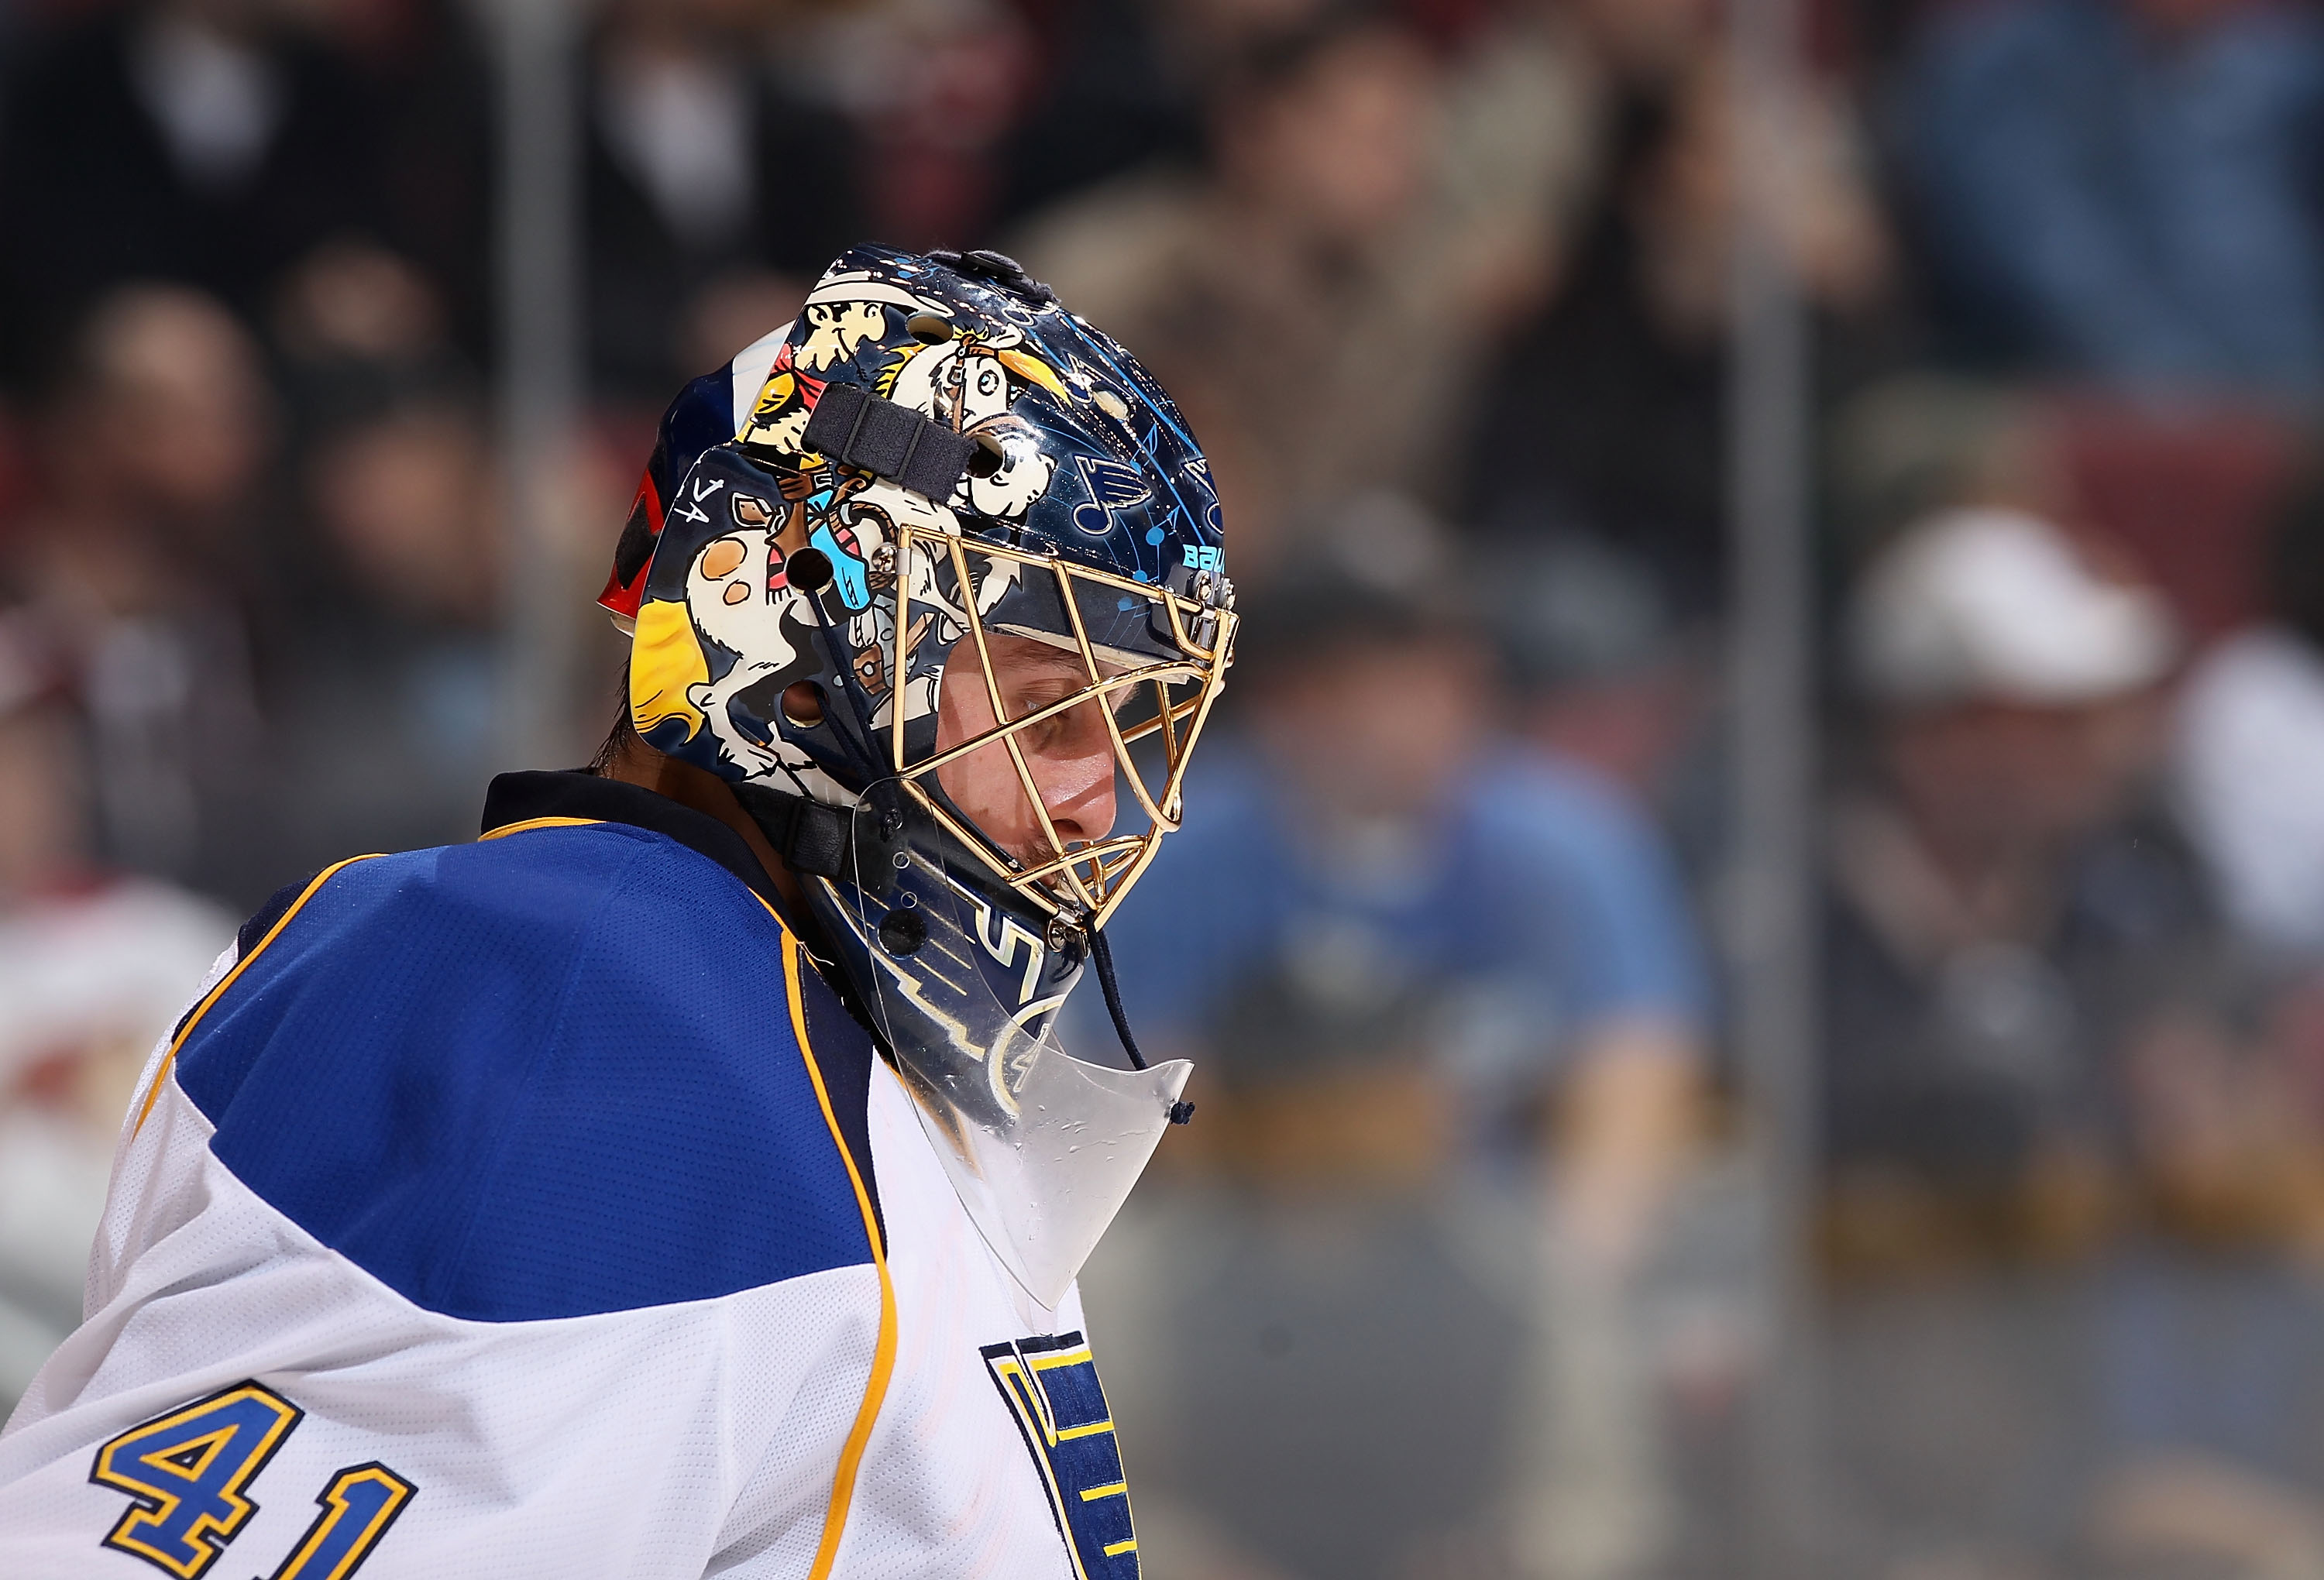 GLENDALE, AZ - MARCH 22:  Goaltender Jaroslav Halak #41 of the St. Louis Blues reacts during the NHL game against the Phoenix Coyotes at Jobing.com Arena on March 22, 2011 in Glendale, Arizona. The Coyotes defeated the Blues 2-1.  (Photo by Christian Pete